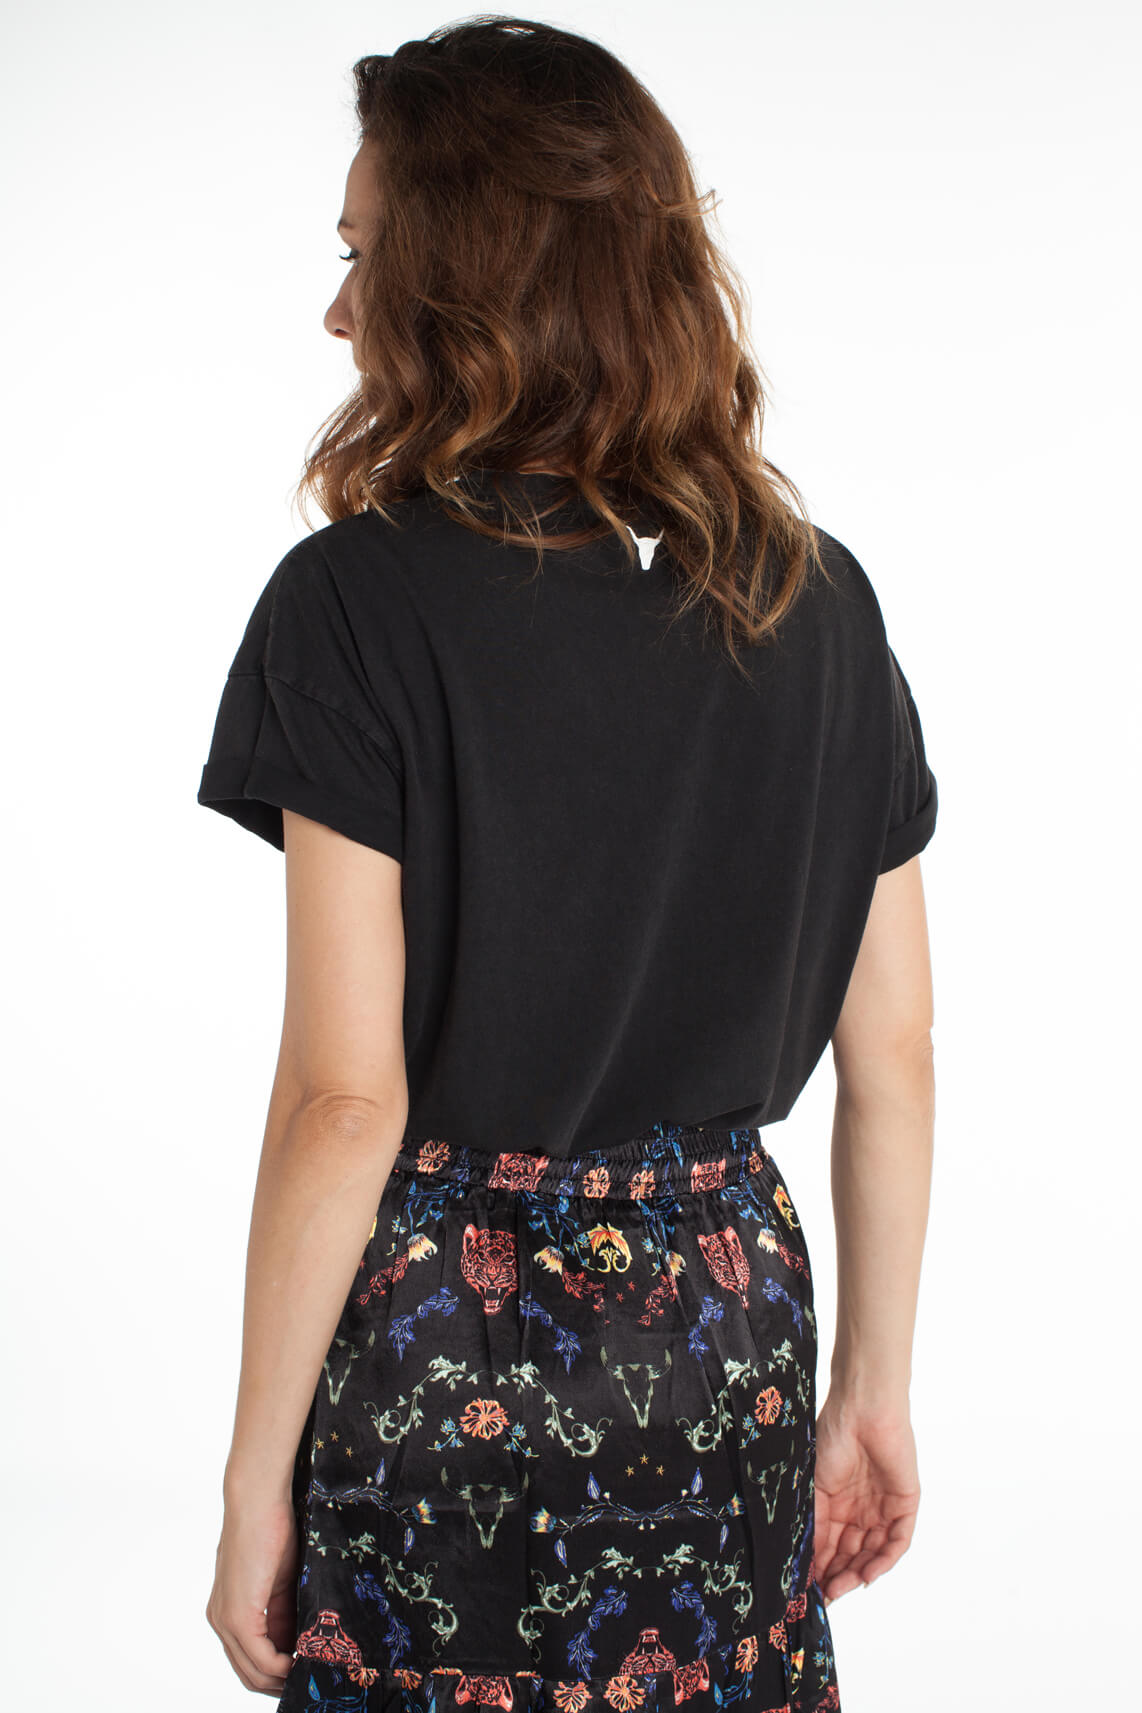 Alix The Label Dames Shirt met opdruk zwart